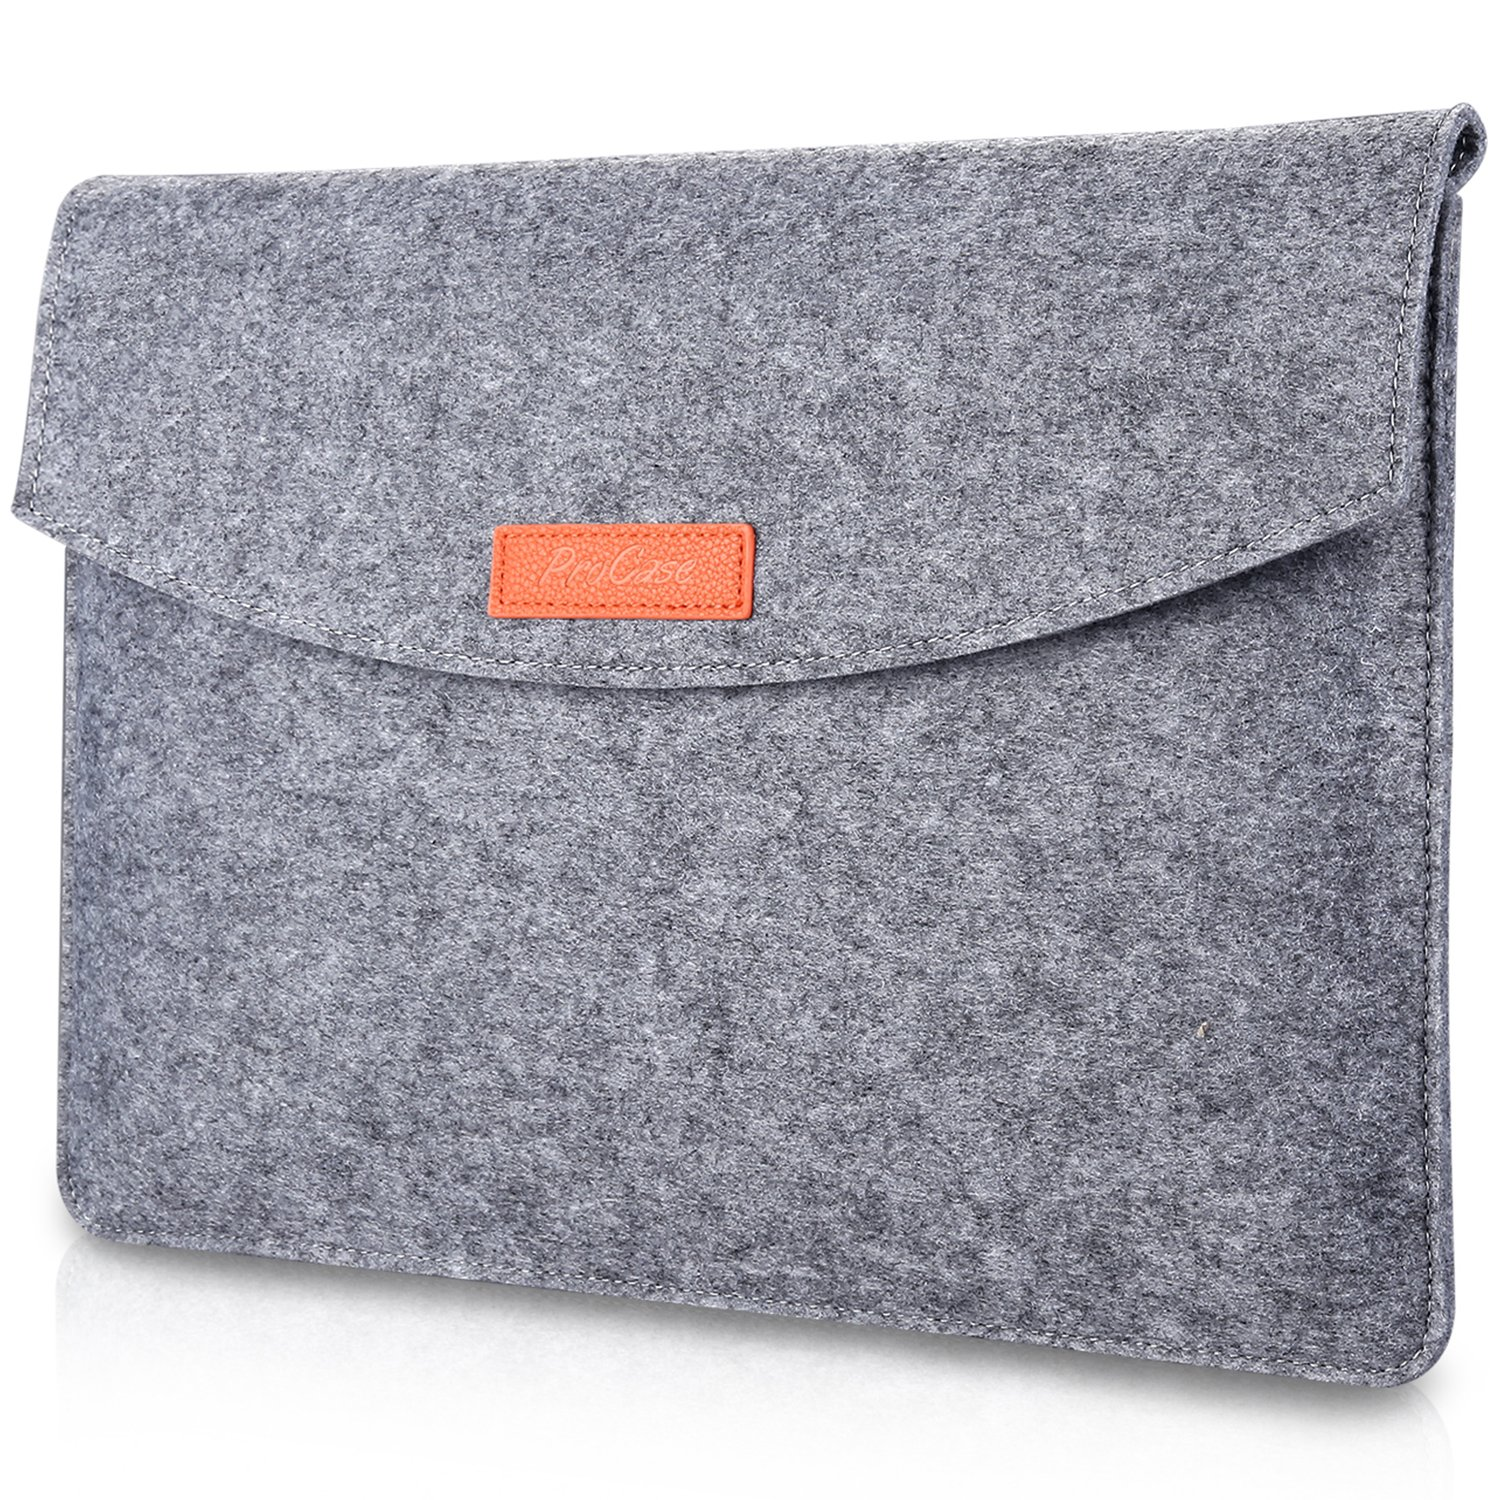 ProCase 12-12.9 Inch Sleeve Bag, Portable Felt Carrying Protective Sleeve Case for Surface Pro 6 4 3, Apple iPad Pro 12.9, 12 Inch MacBook, 11-12 inch Chromebook Ultrabook Netbook Laptop -Black PC-08360161